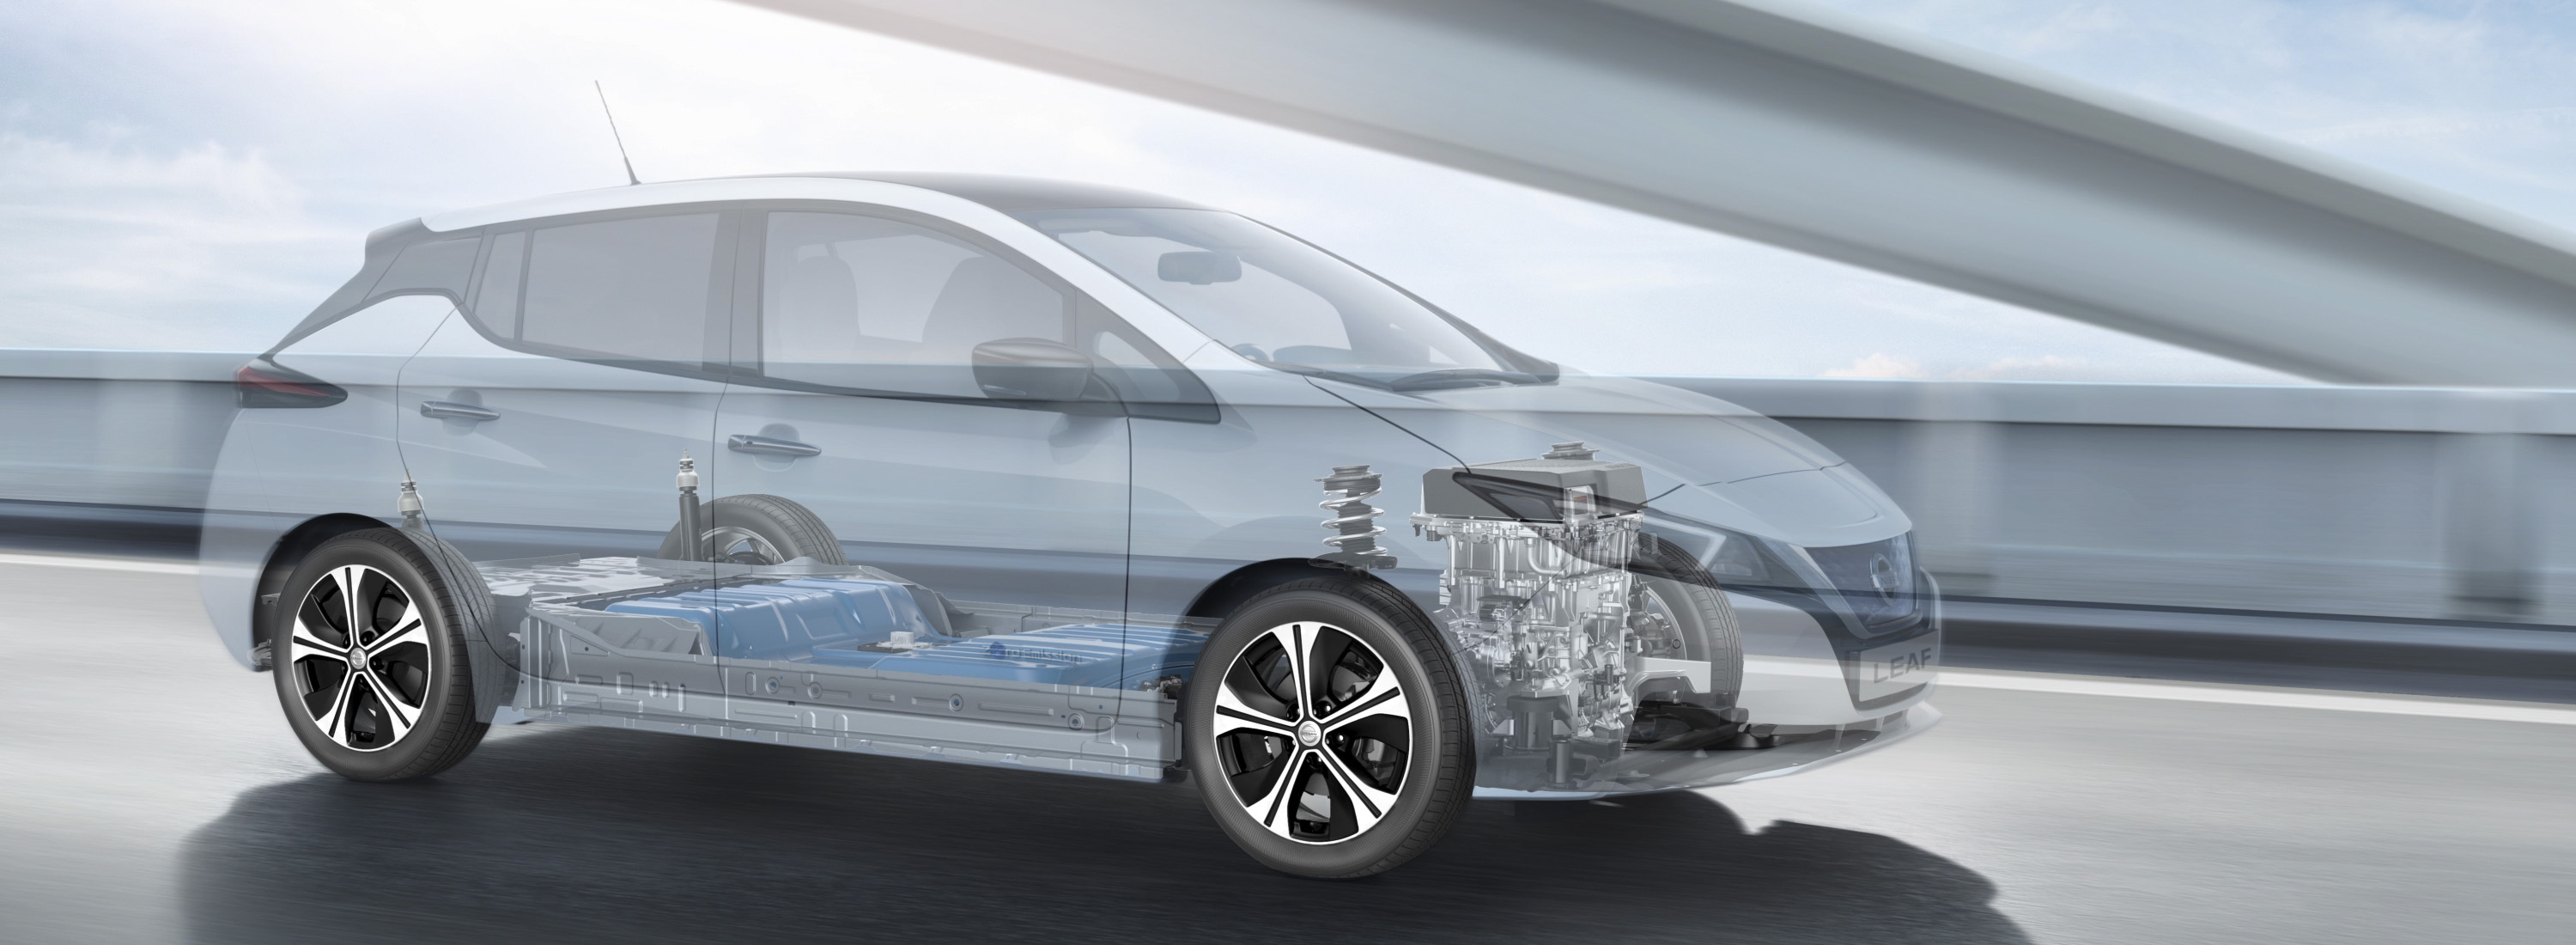 Nissan LEAF x-ray view showing battery and motor